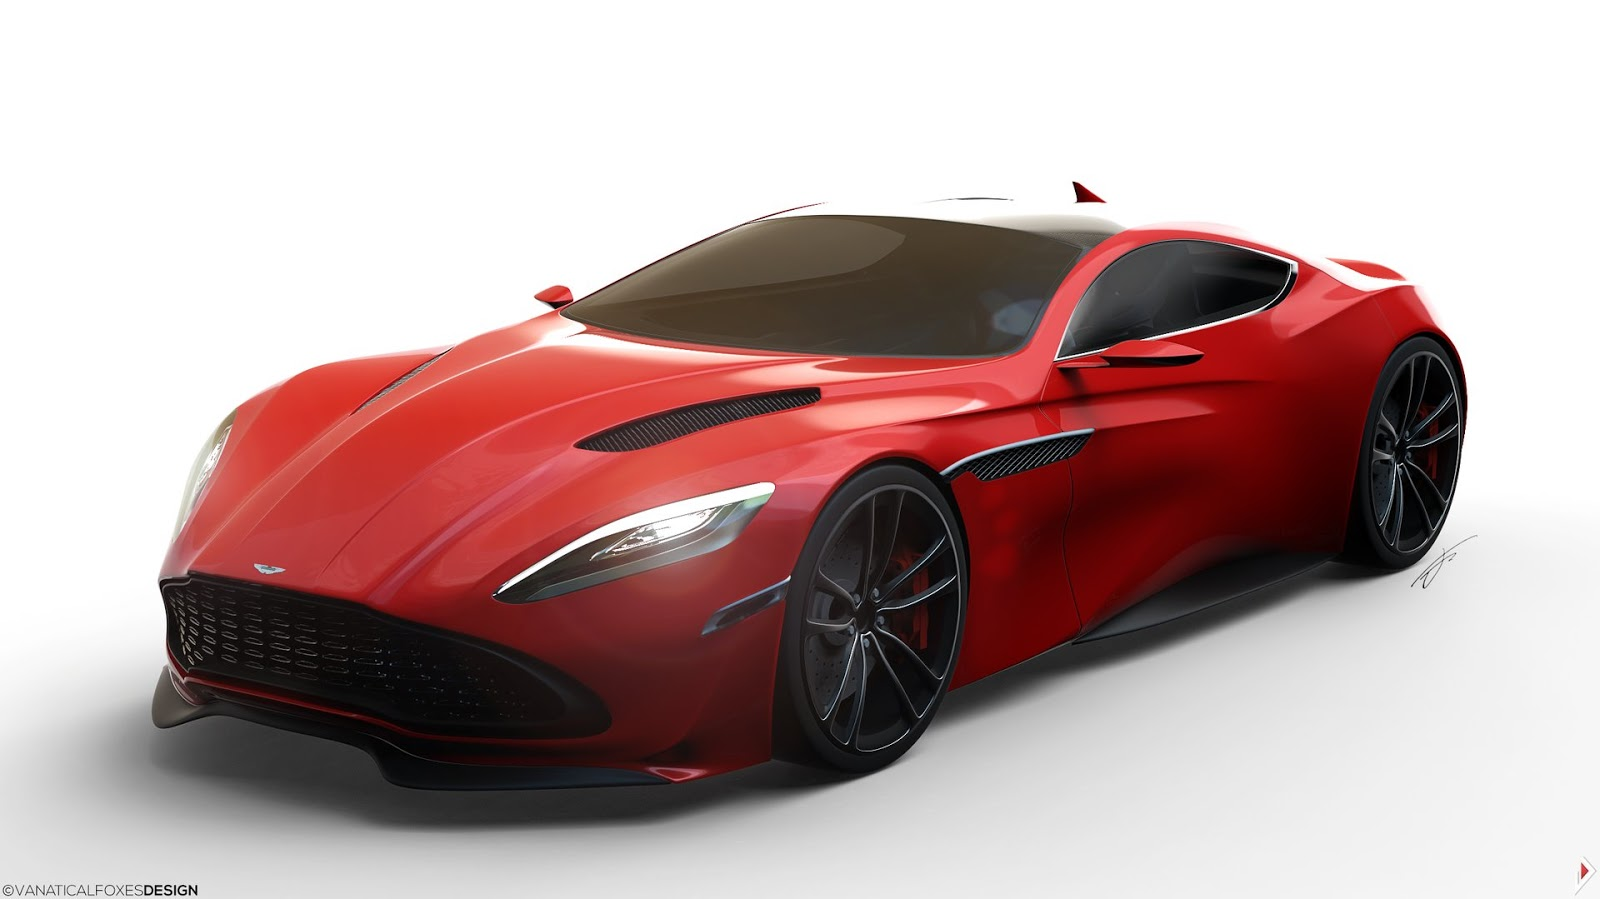 aston martin db11 imagined in jaw dropping renderings autoevolution. Black Bedroom Furniture Sets. Home Design Ideas